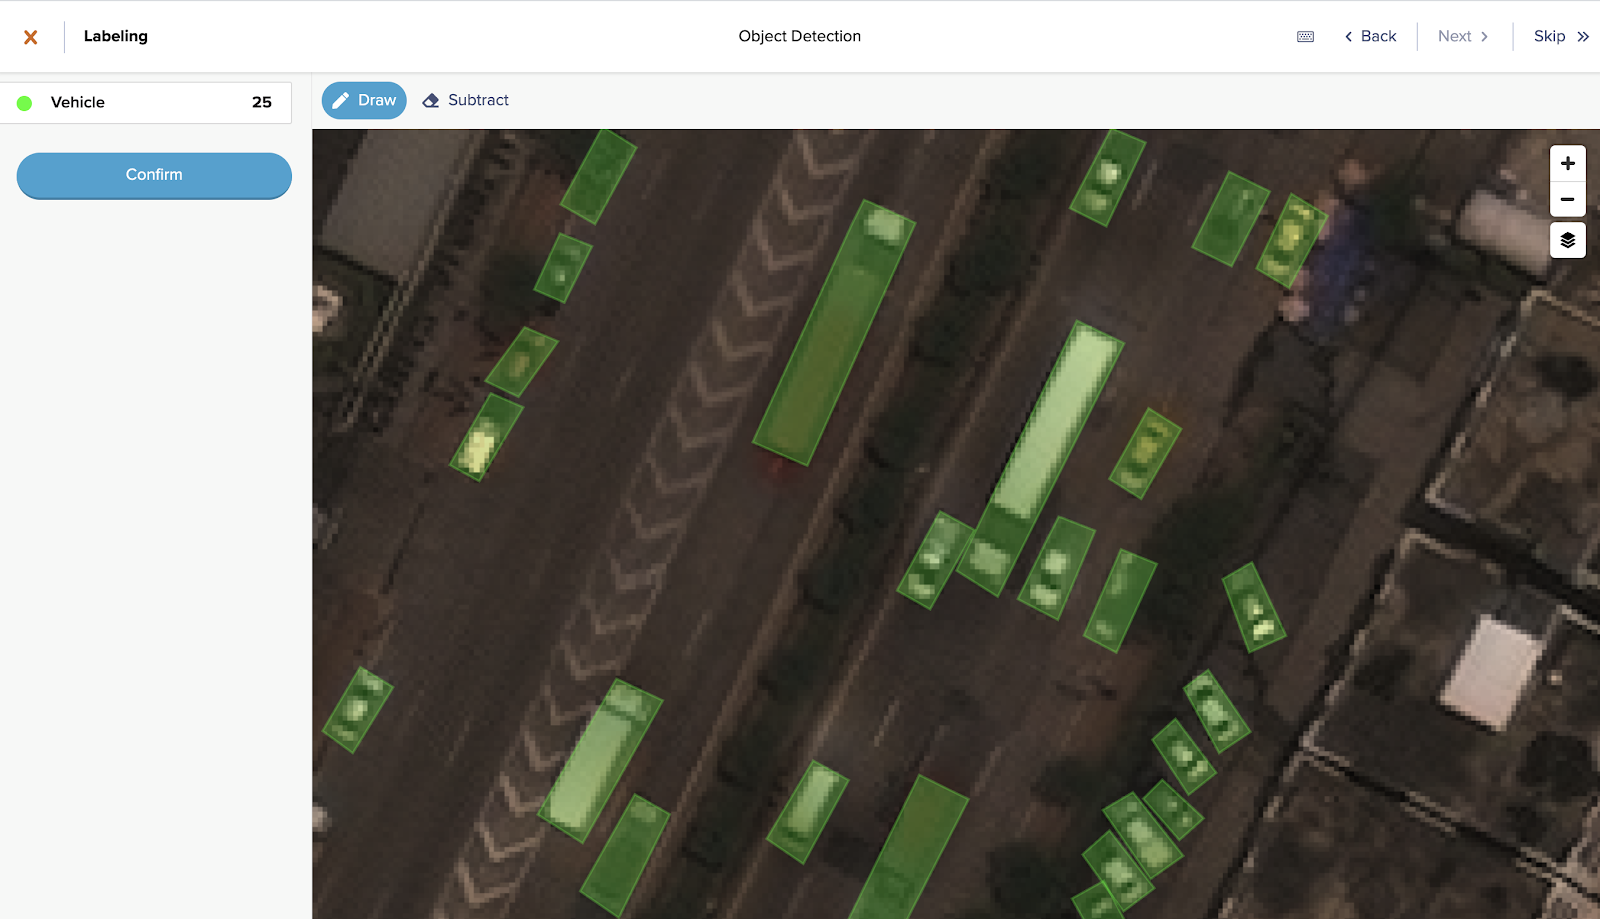 A screenshot of a object detection use-case in the labeling tool GroundWork. Green bounding boxes are drawn around 25 vehicles.